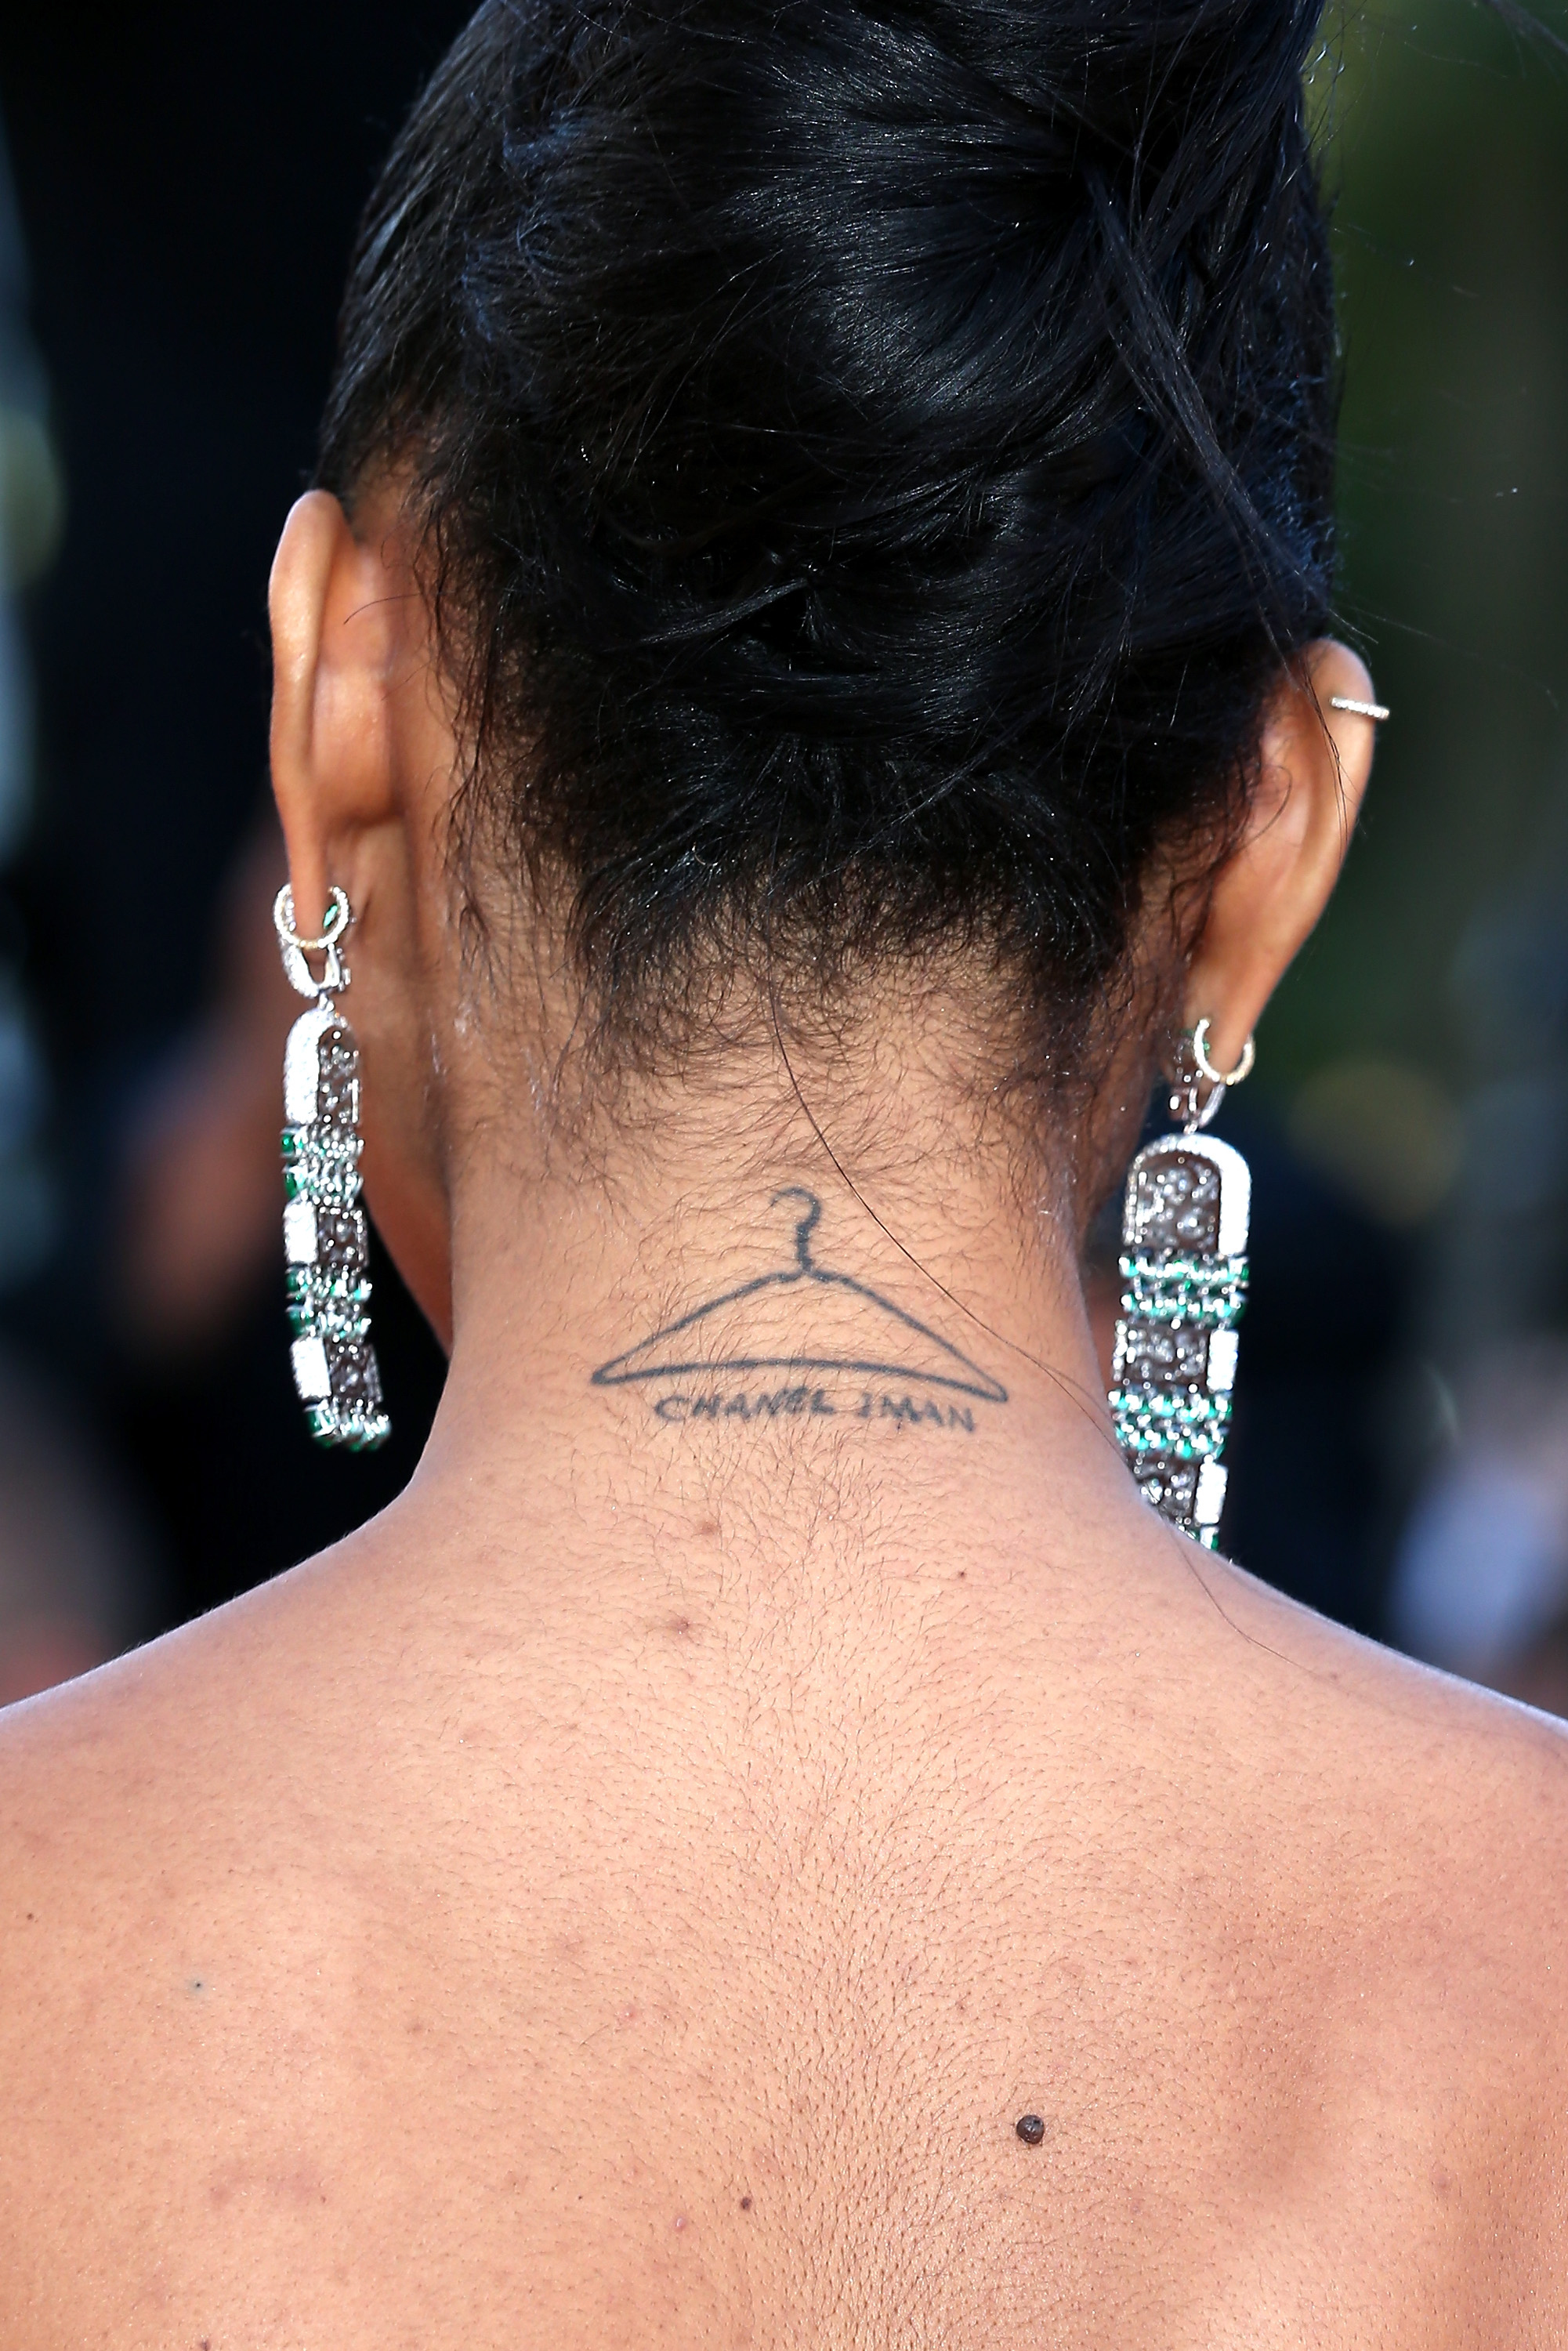 Image result for TATTOOS getty images